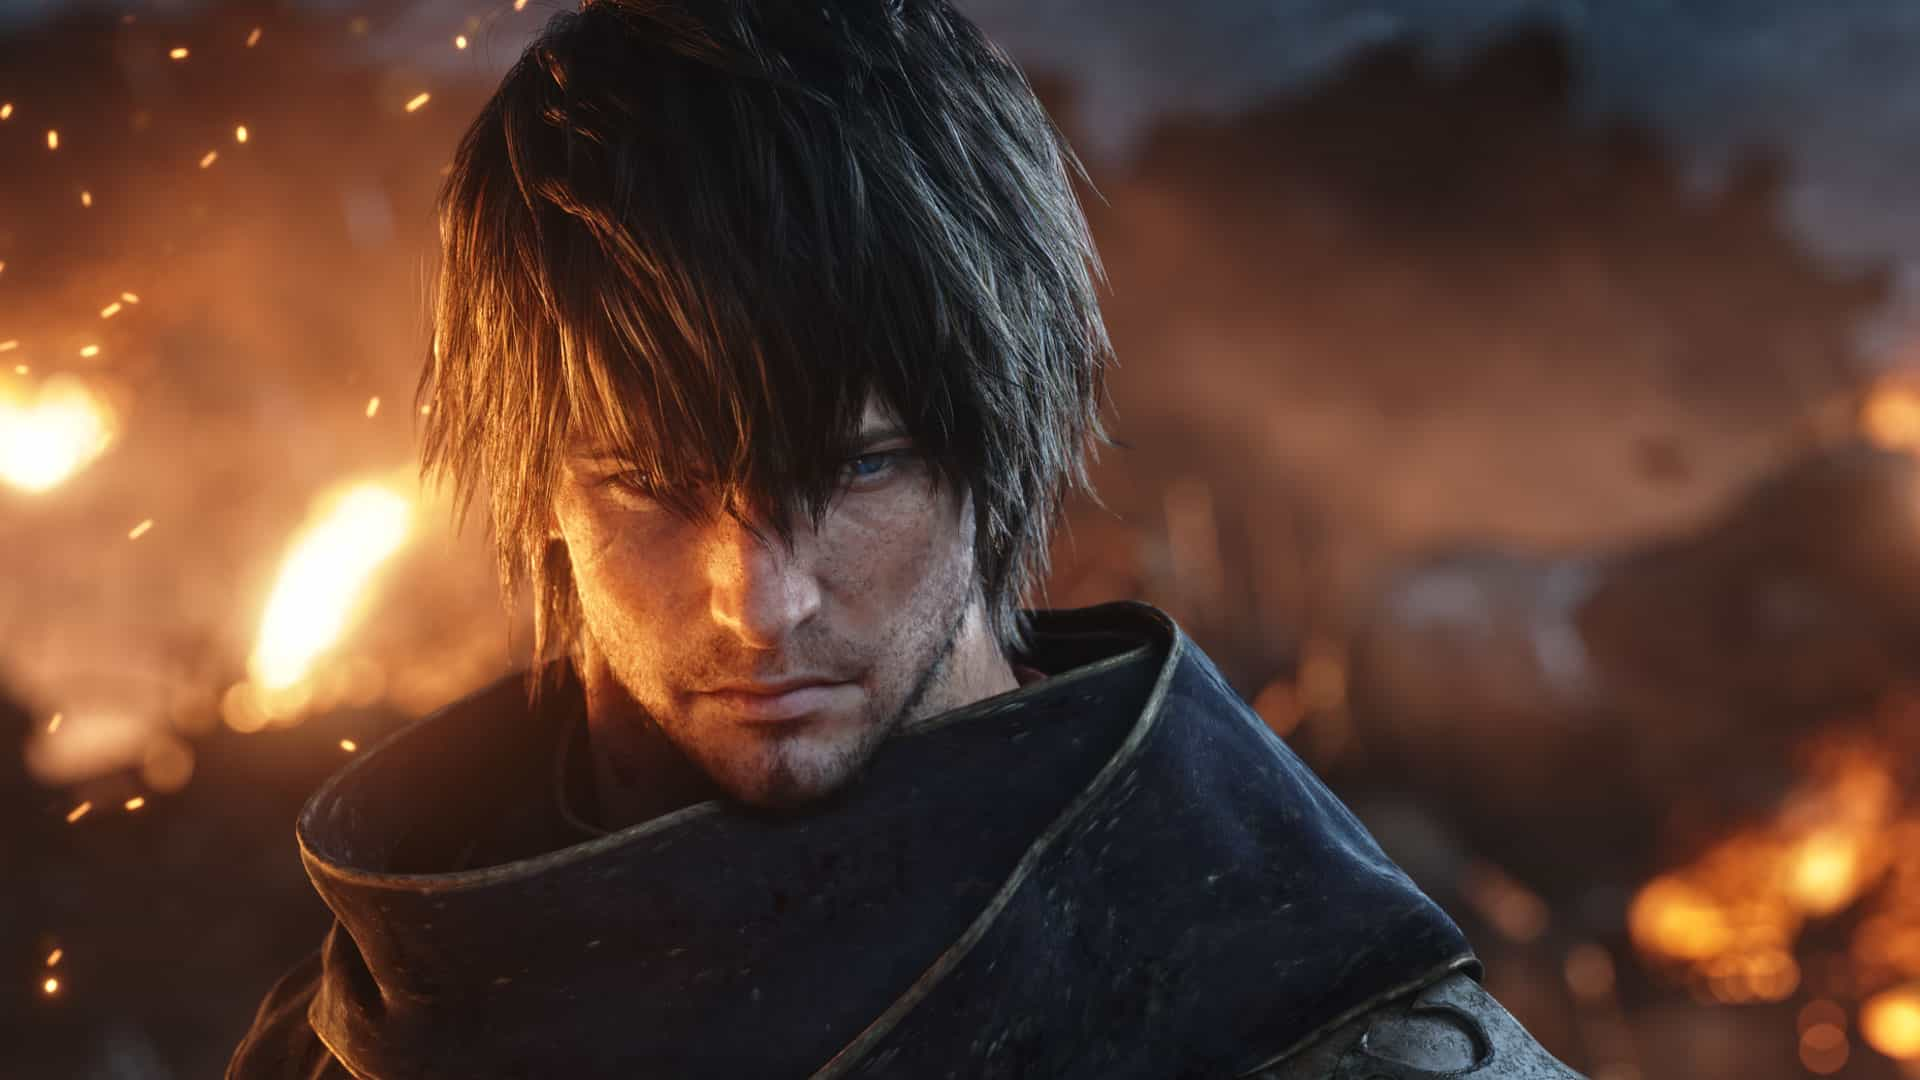 Final Fantasy VII Remake success: what next for Square Enix IP and Final Fantasy XIV: Shadowbringers